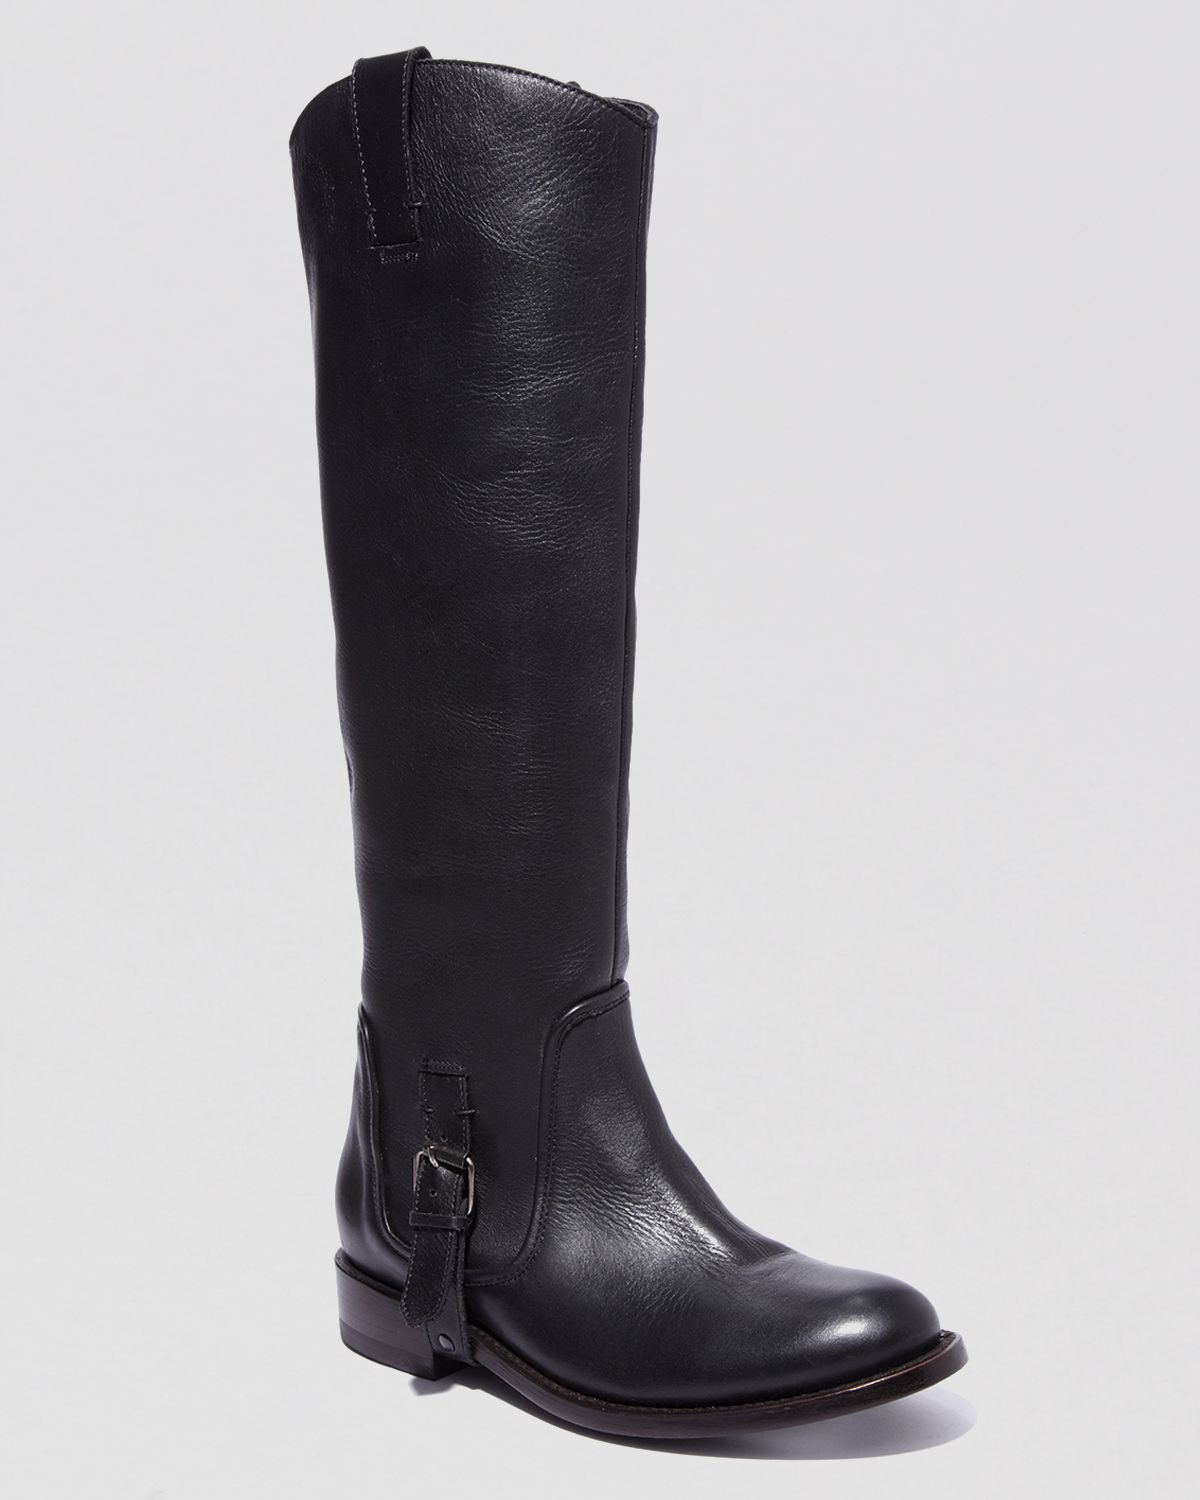 Lyst Dolce Vita Tall Riding Boots Luela In Black